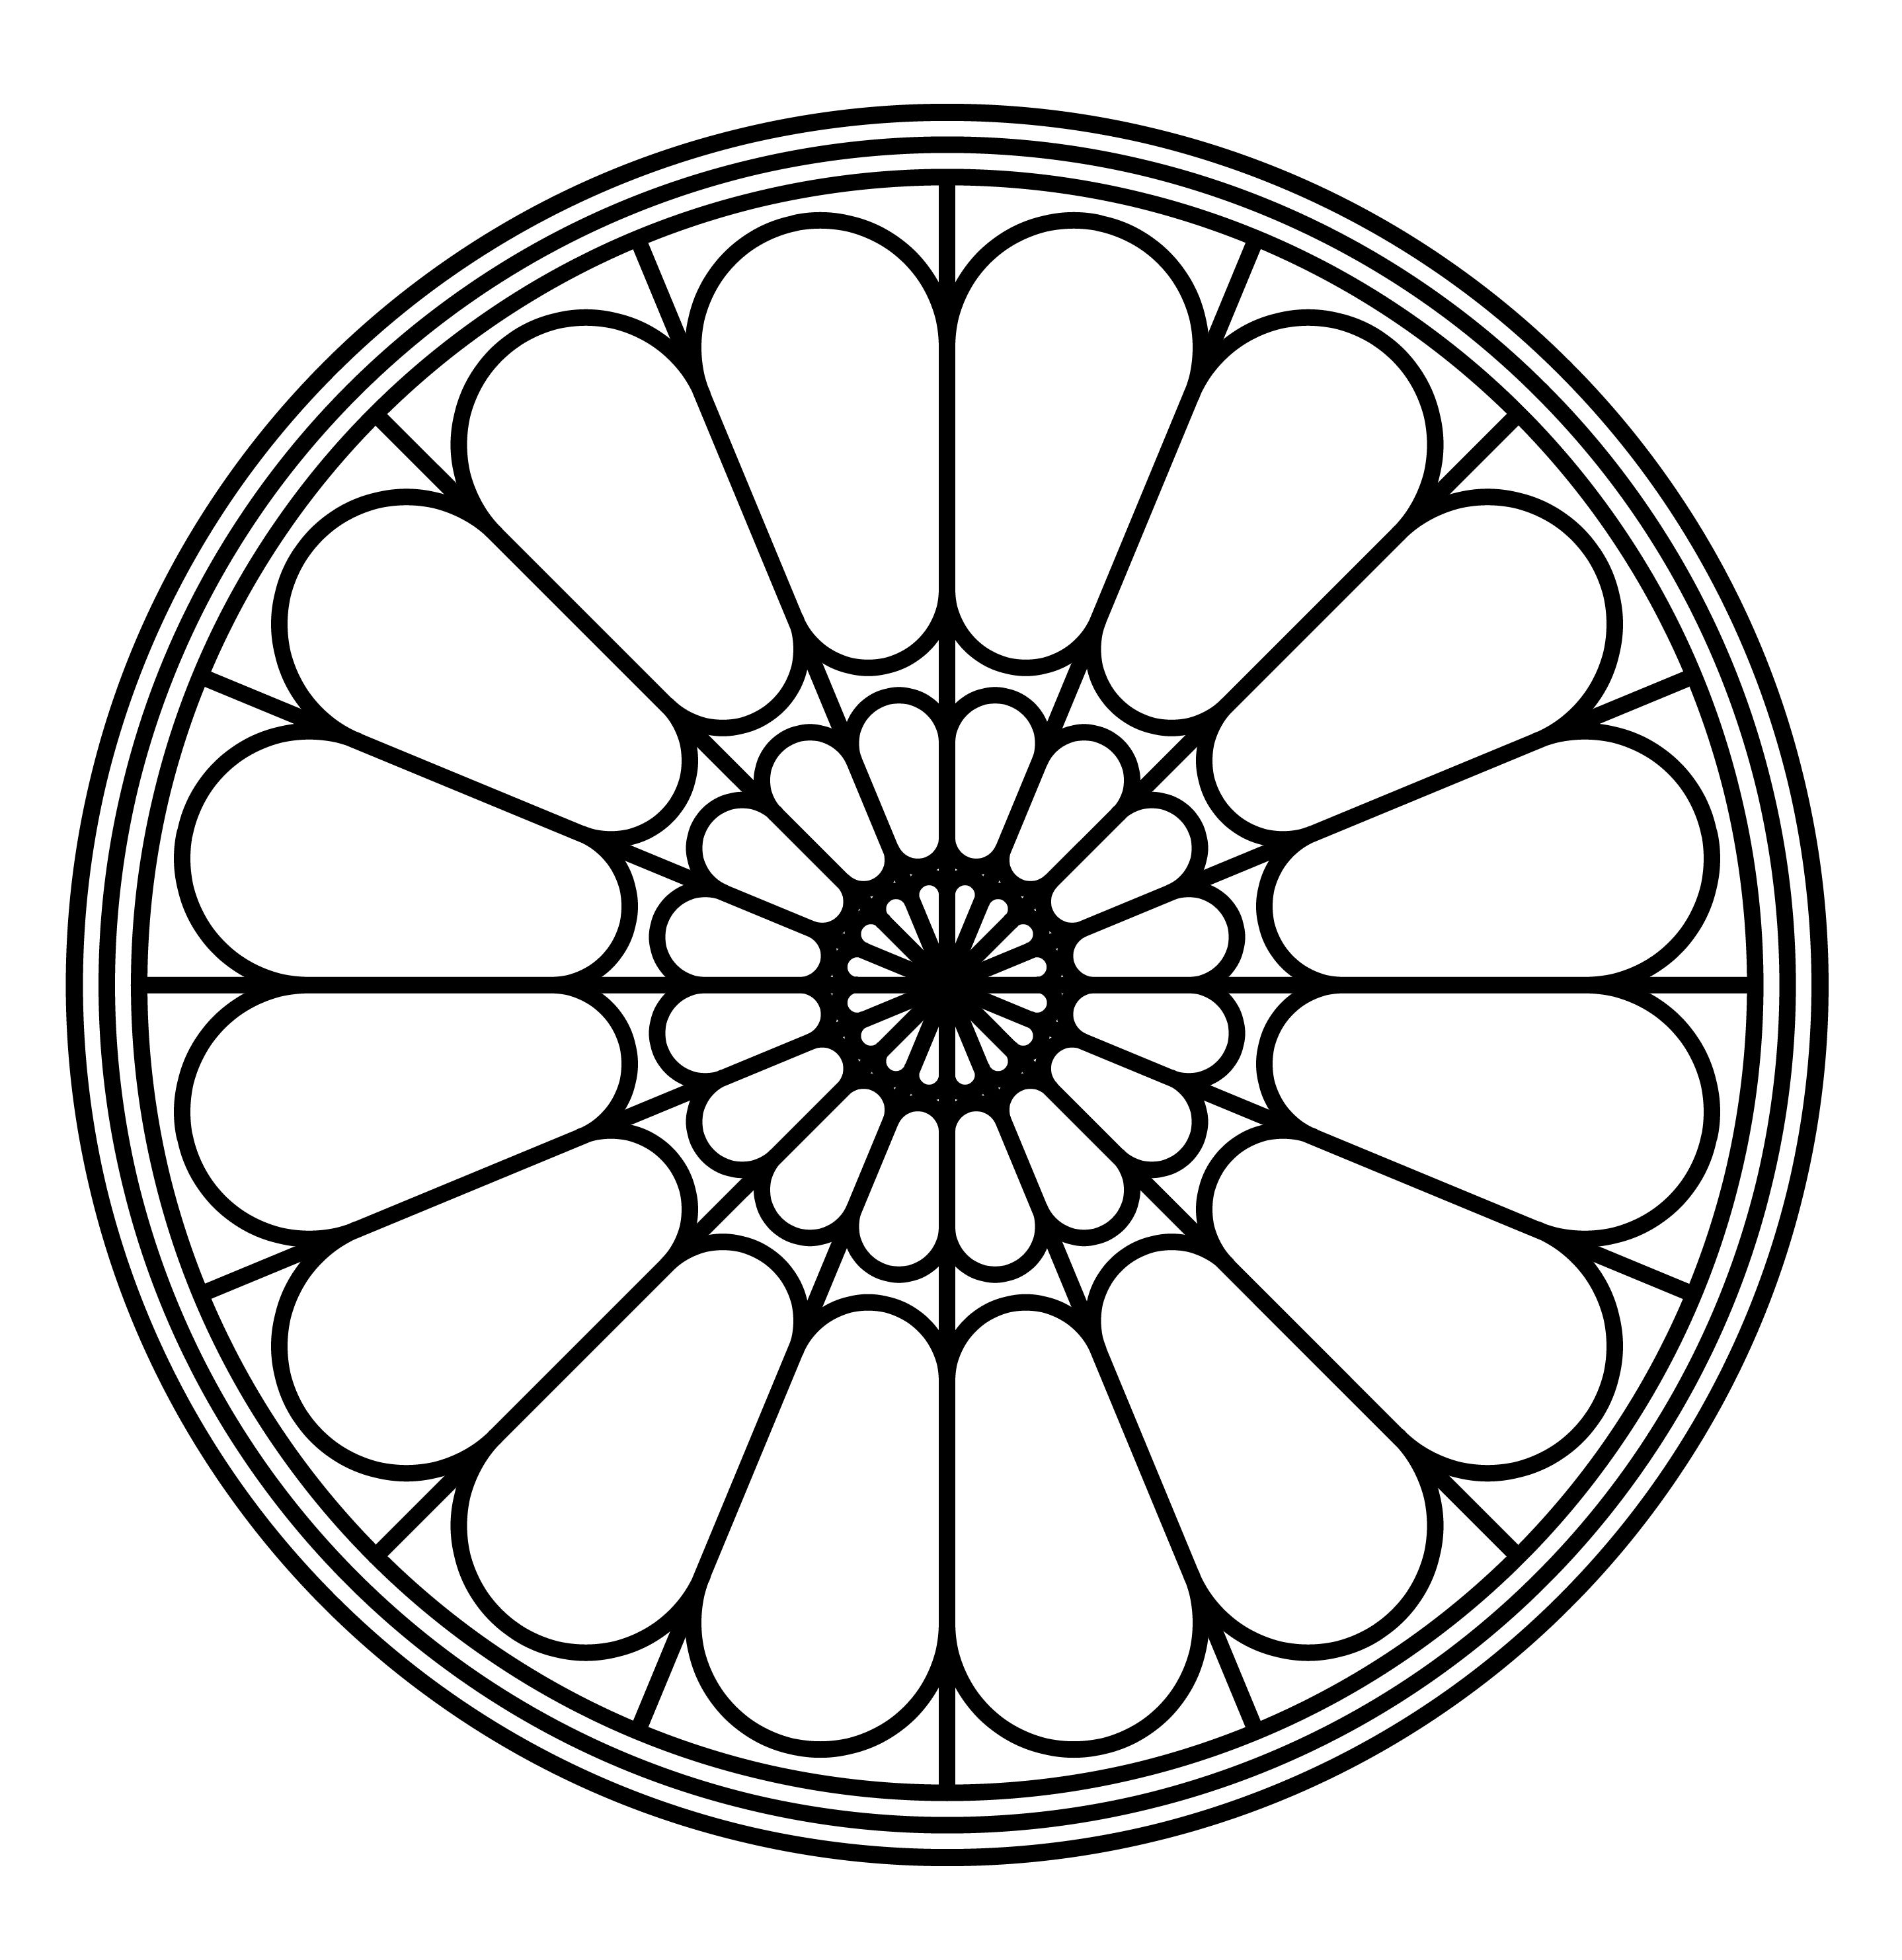 rose stained glass coloring pages rose window drawing at getdrawings free download rose glass pages stained coloring